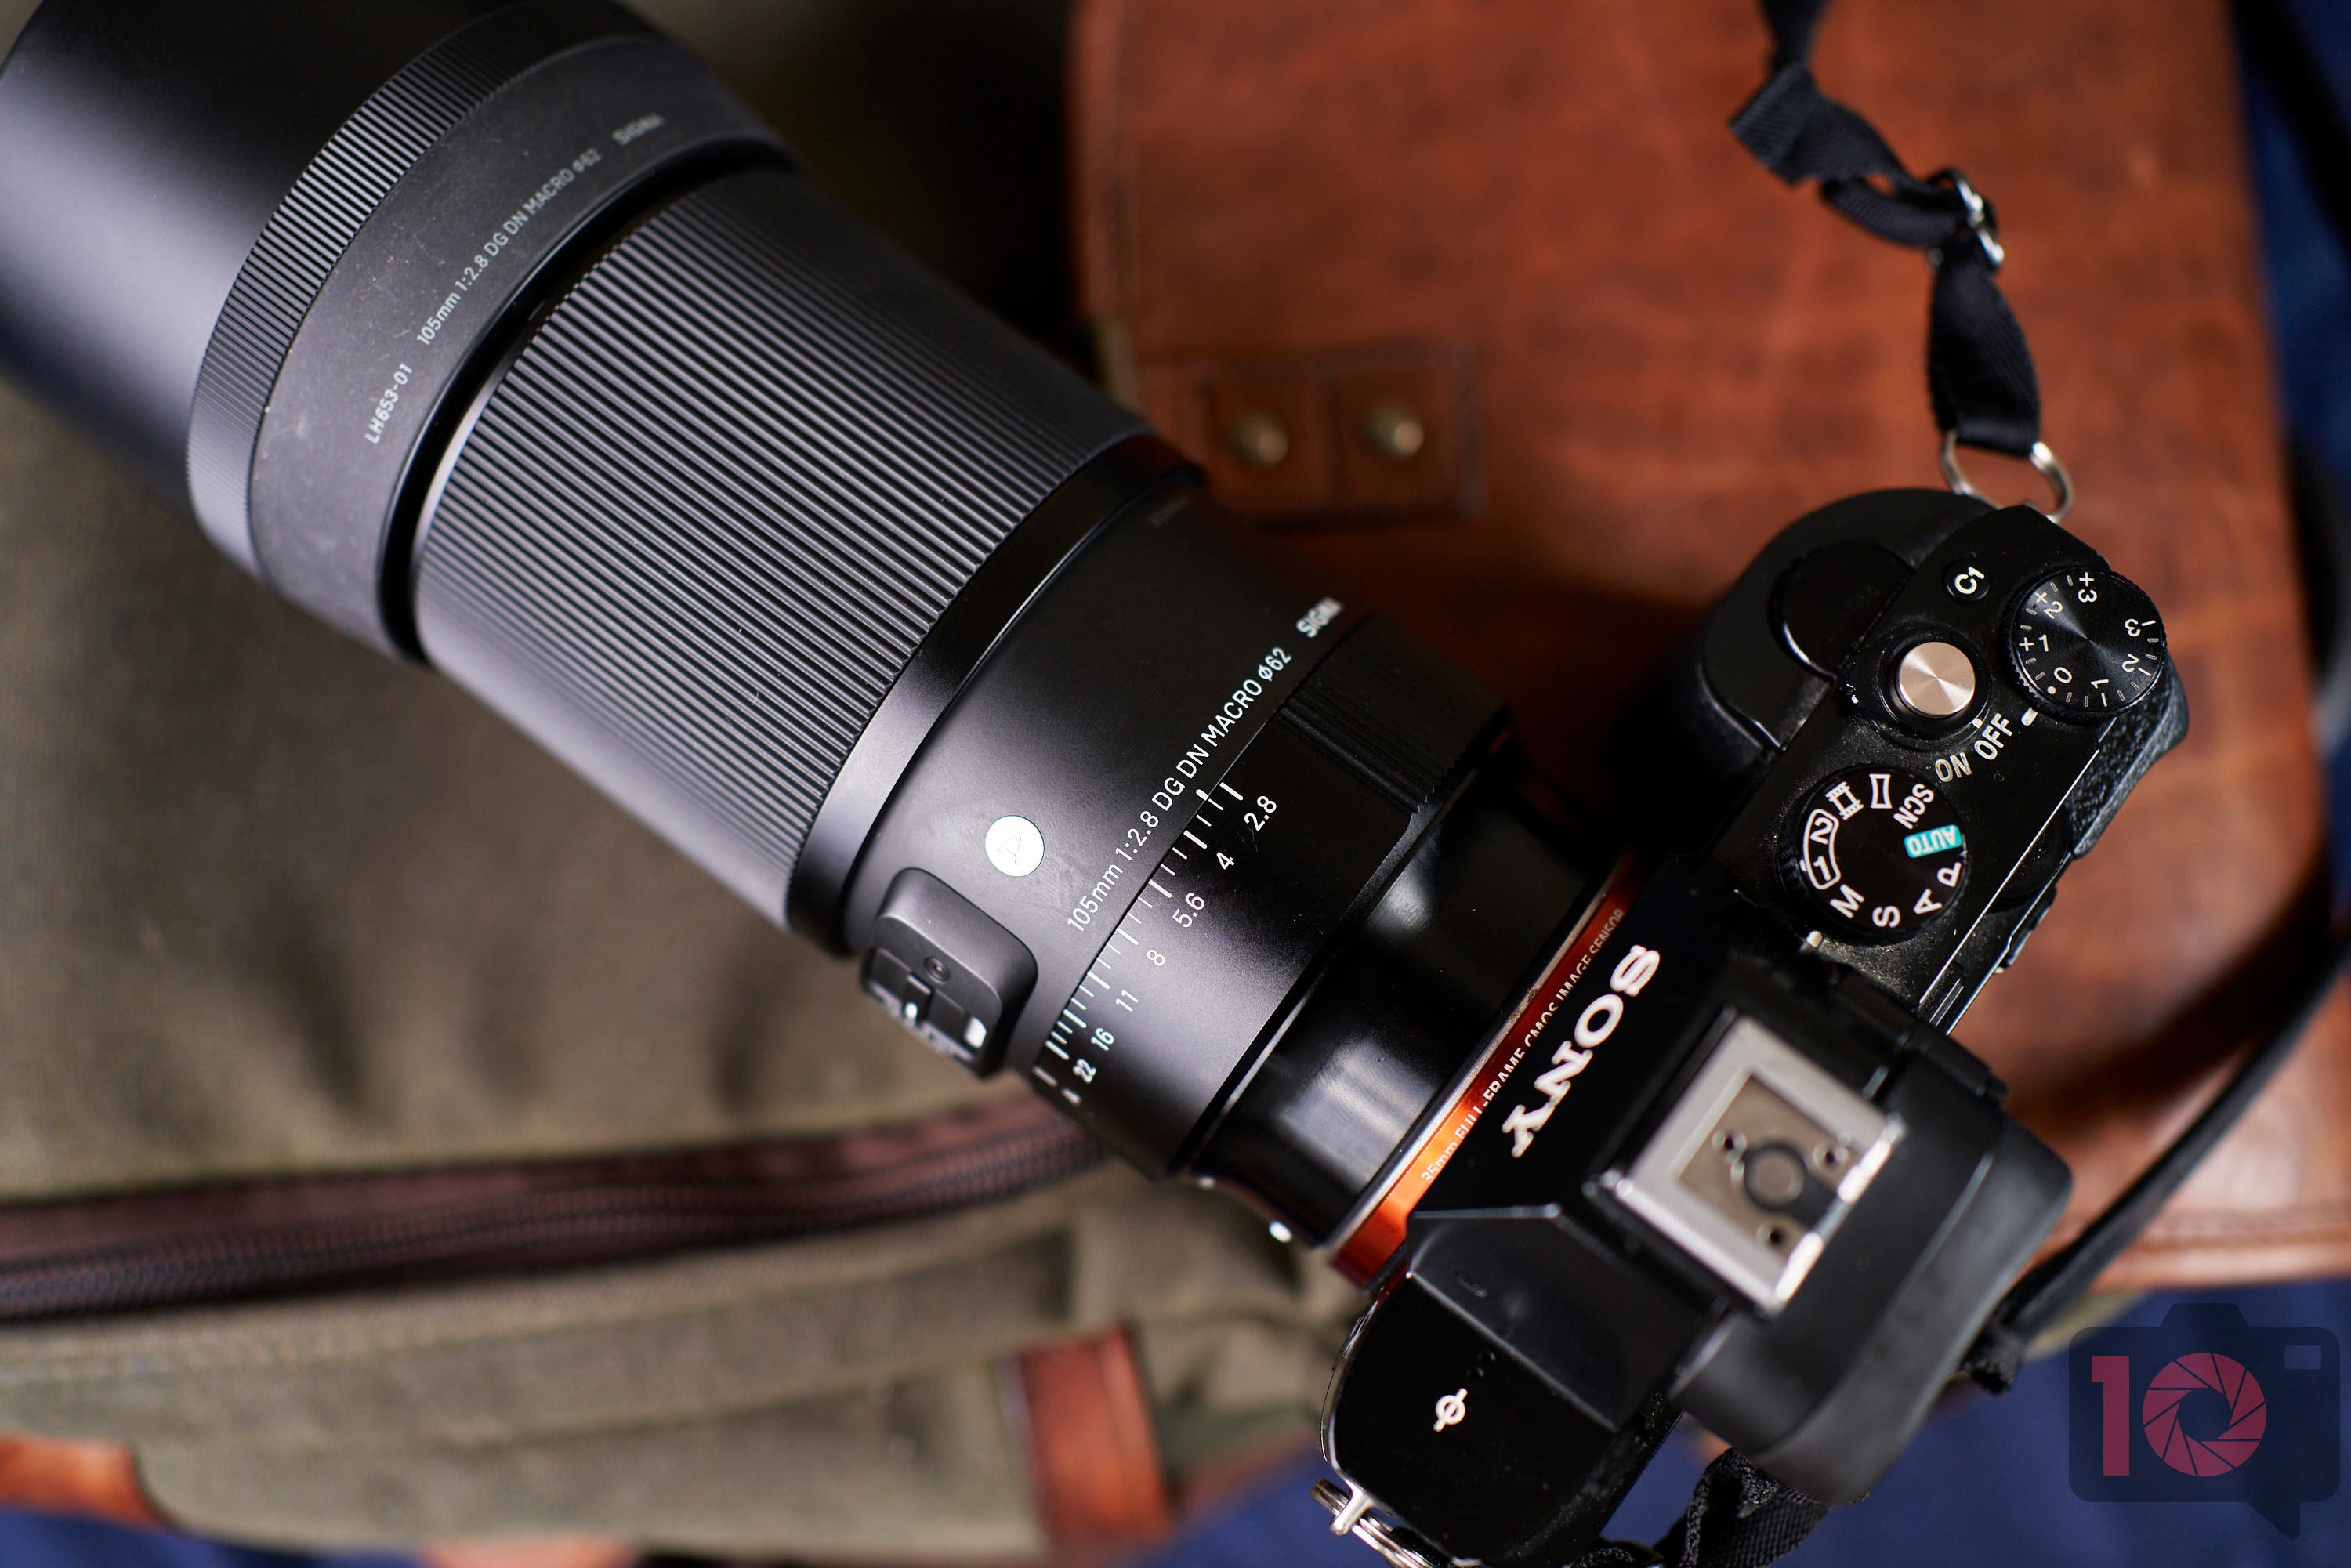 Sharp. Beautiful. Sigma 105mm F2.8 DG DN Macro Art Review